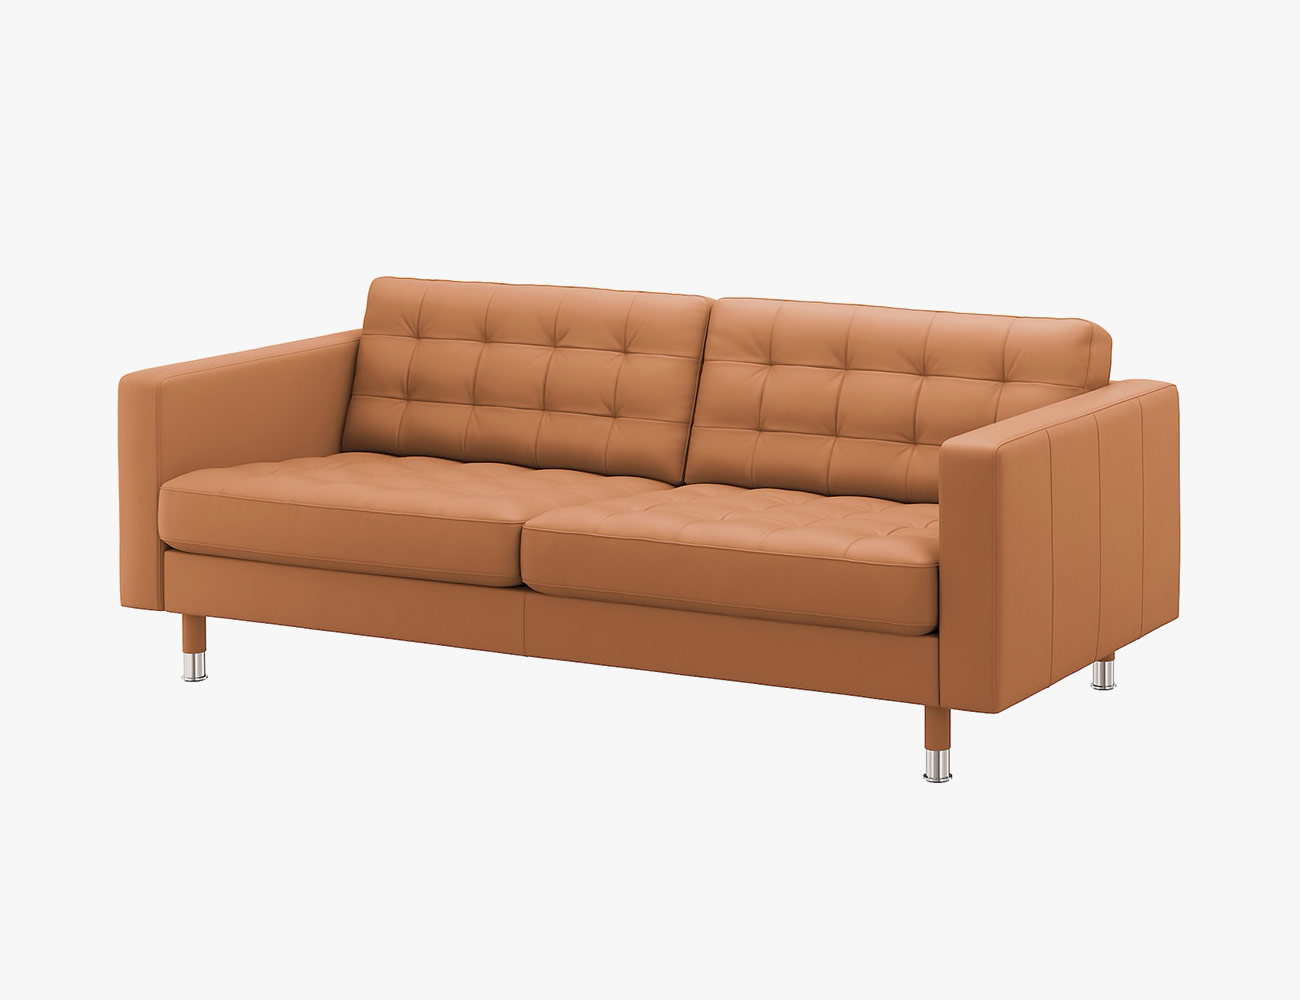 Leather Sofas And Couches For Every Budget